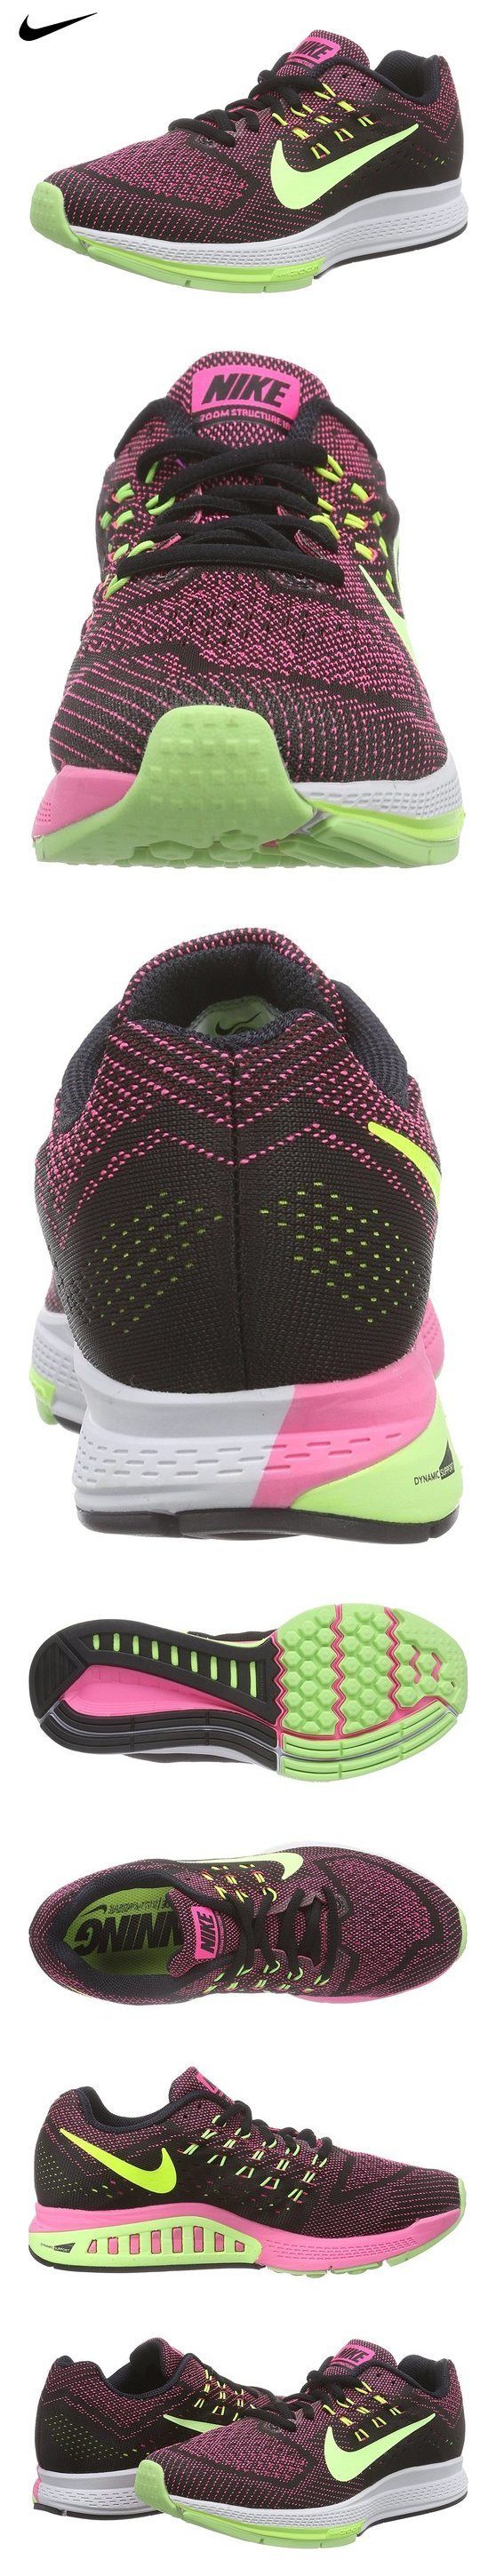 official photos 619c3 e00c0 Nike Womens Wmns Air Zoom Structure 18, PINK POW GHOST GREEN-BLACK-VOLT, 8  US